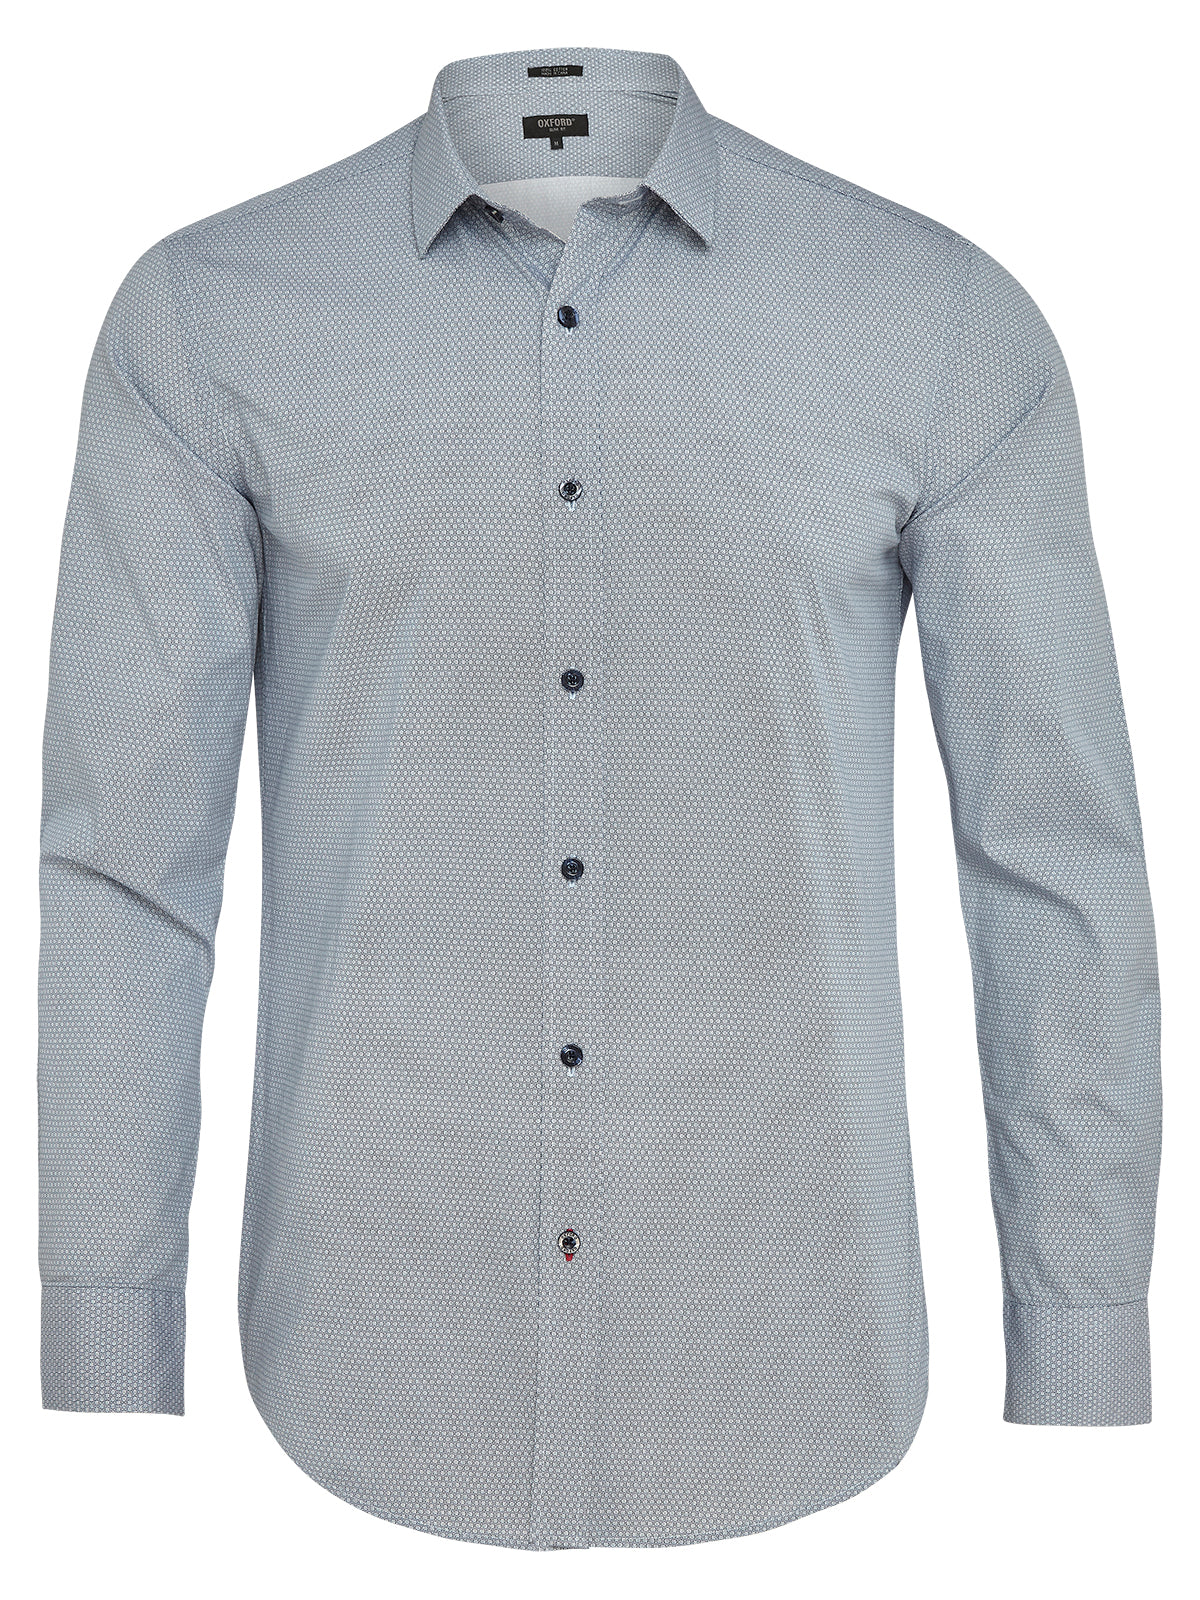 KENTON PRINTED SHIRT NAVY